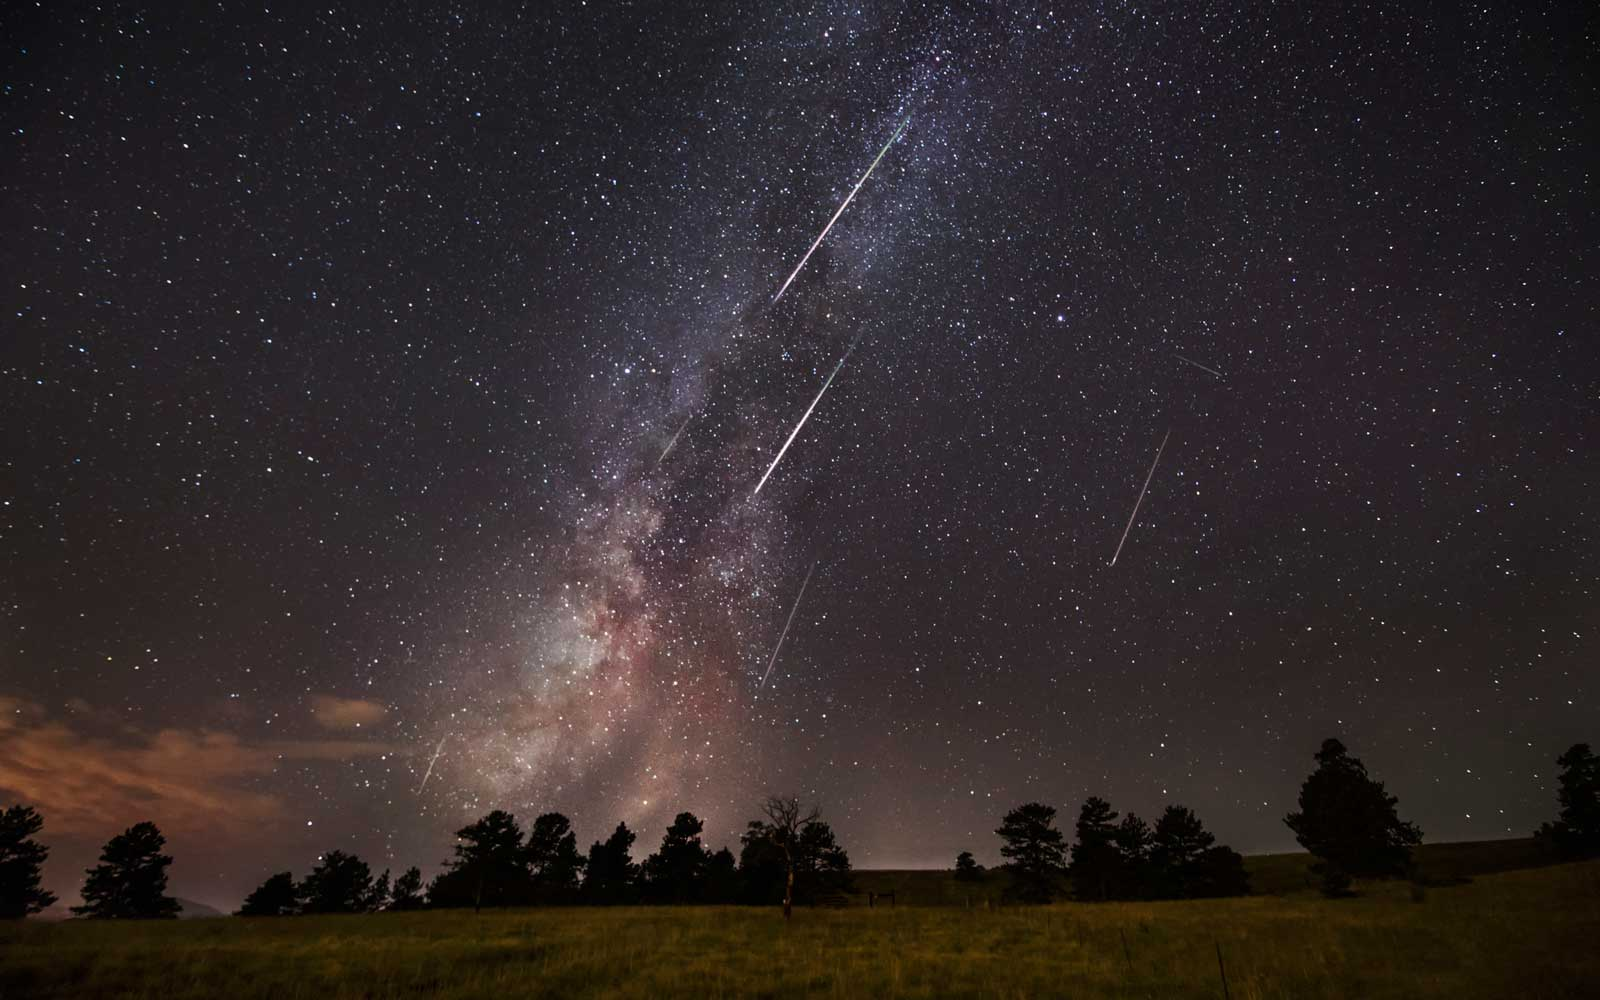 Composite of Milky Way and Perseid meteor shower, Pike National Forest, Colorado